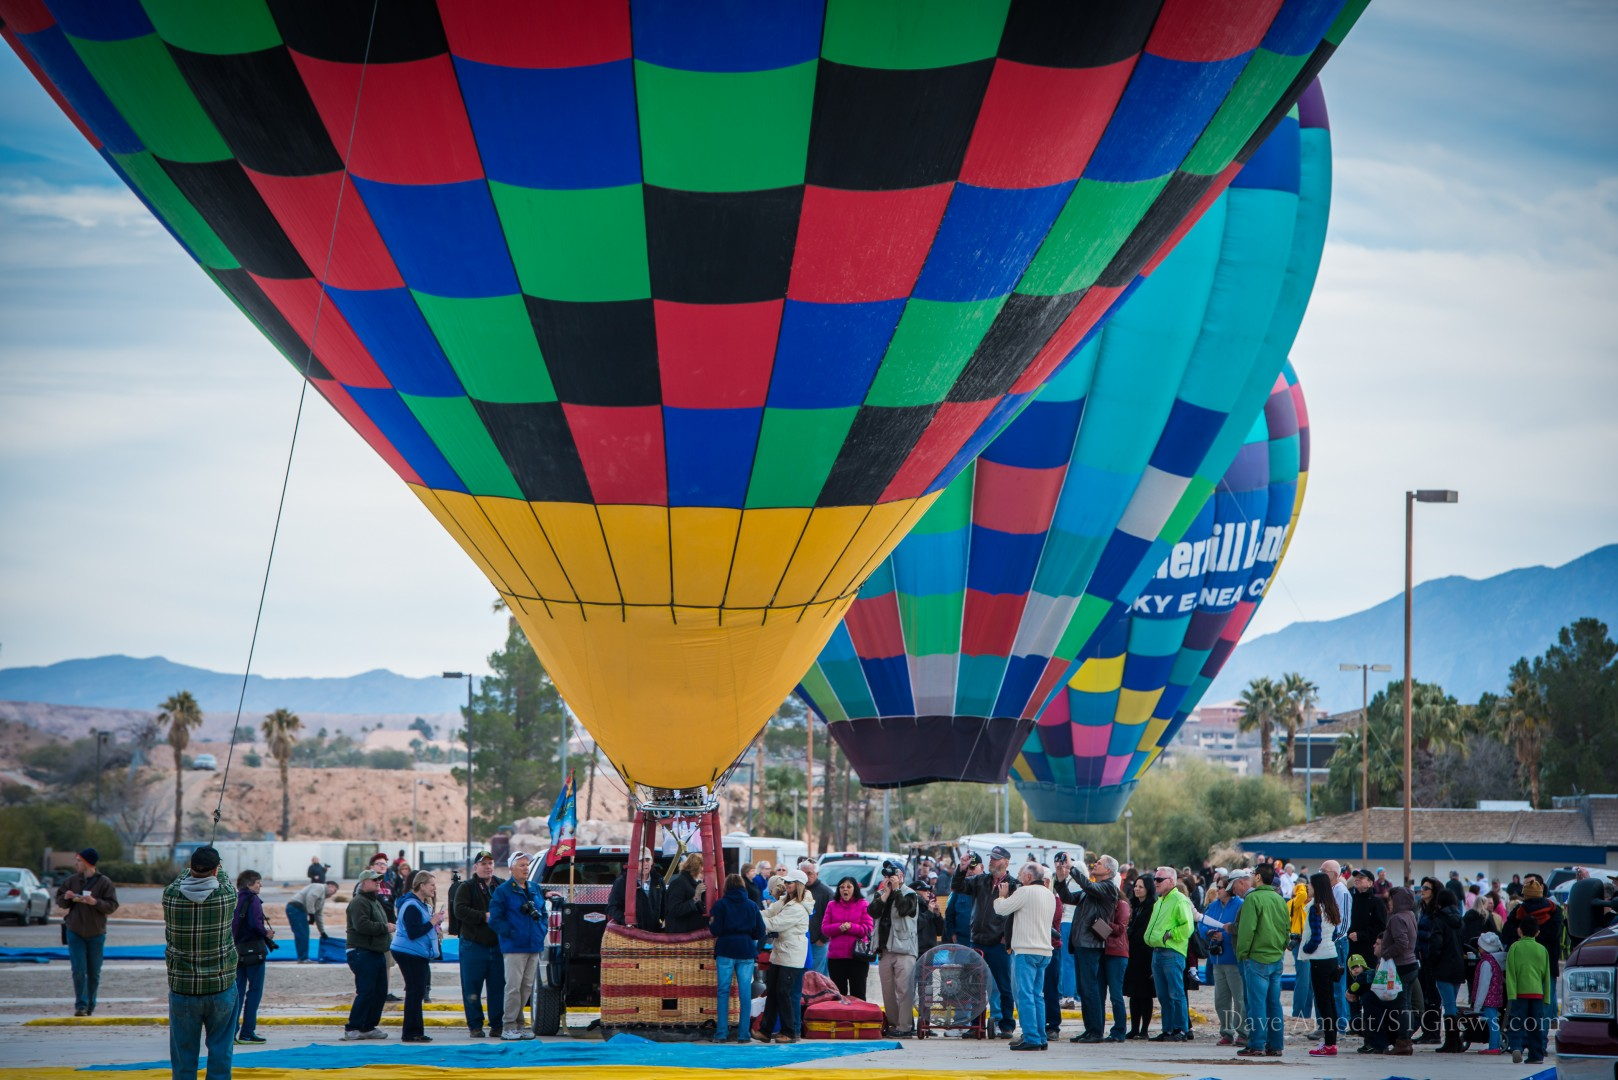 Hot Air Balloon Festival, Mesquite, Nev., Jan. 25, 2014 | Photo by Dave Amodt, St. George News